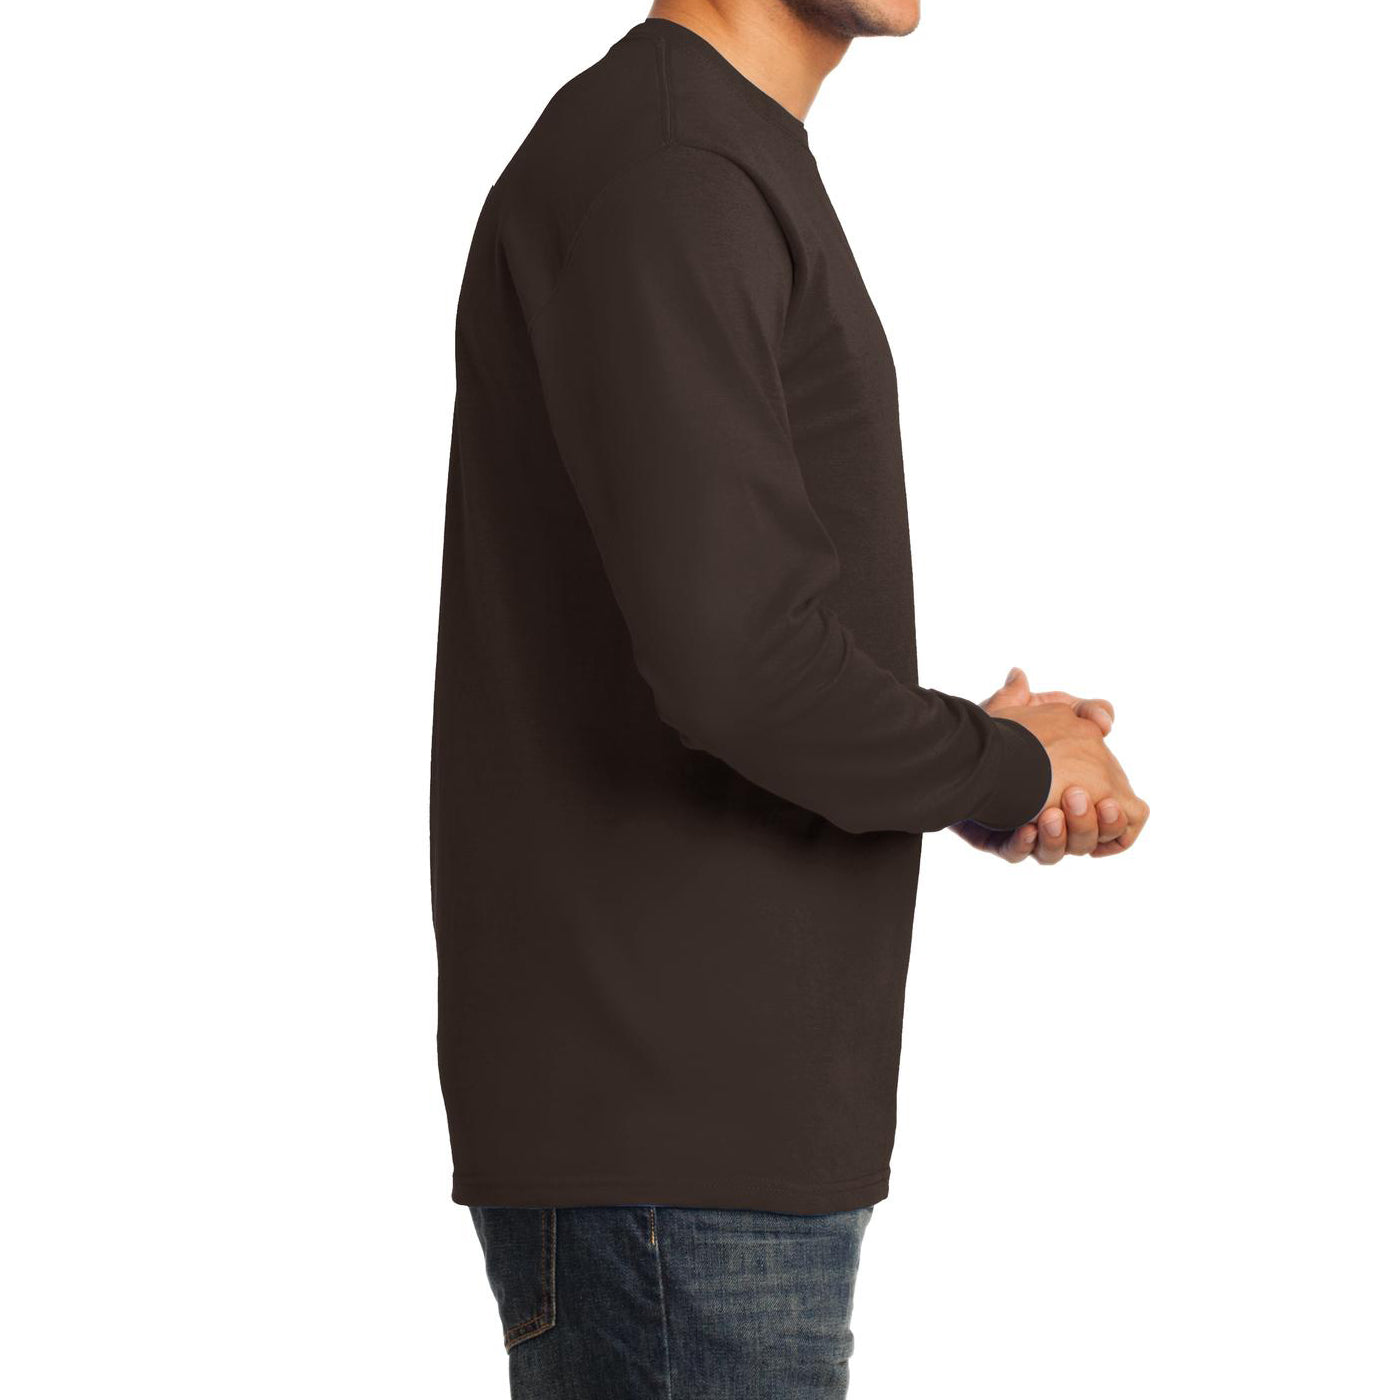 Men's Long Sleeve Essential Tee - Dark Chocolate Brown - Side